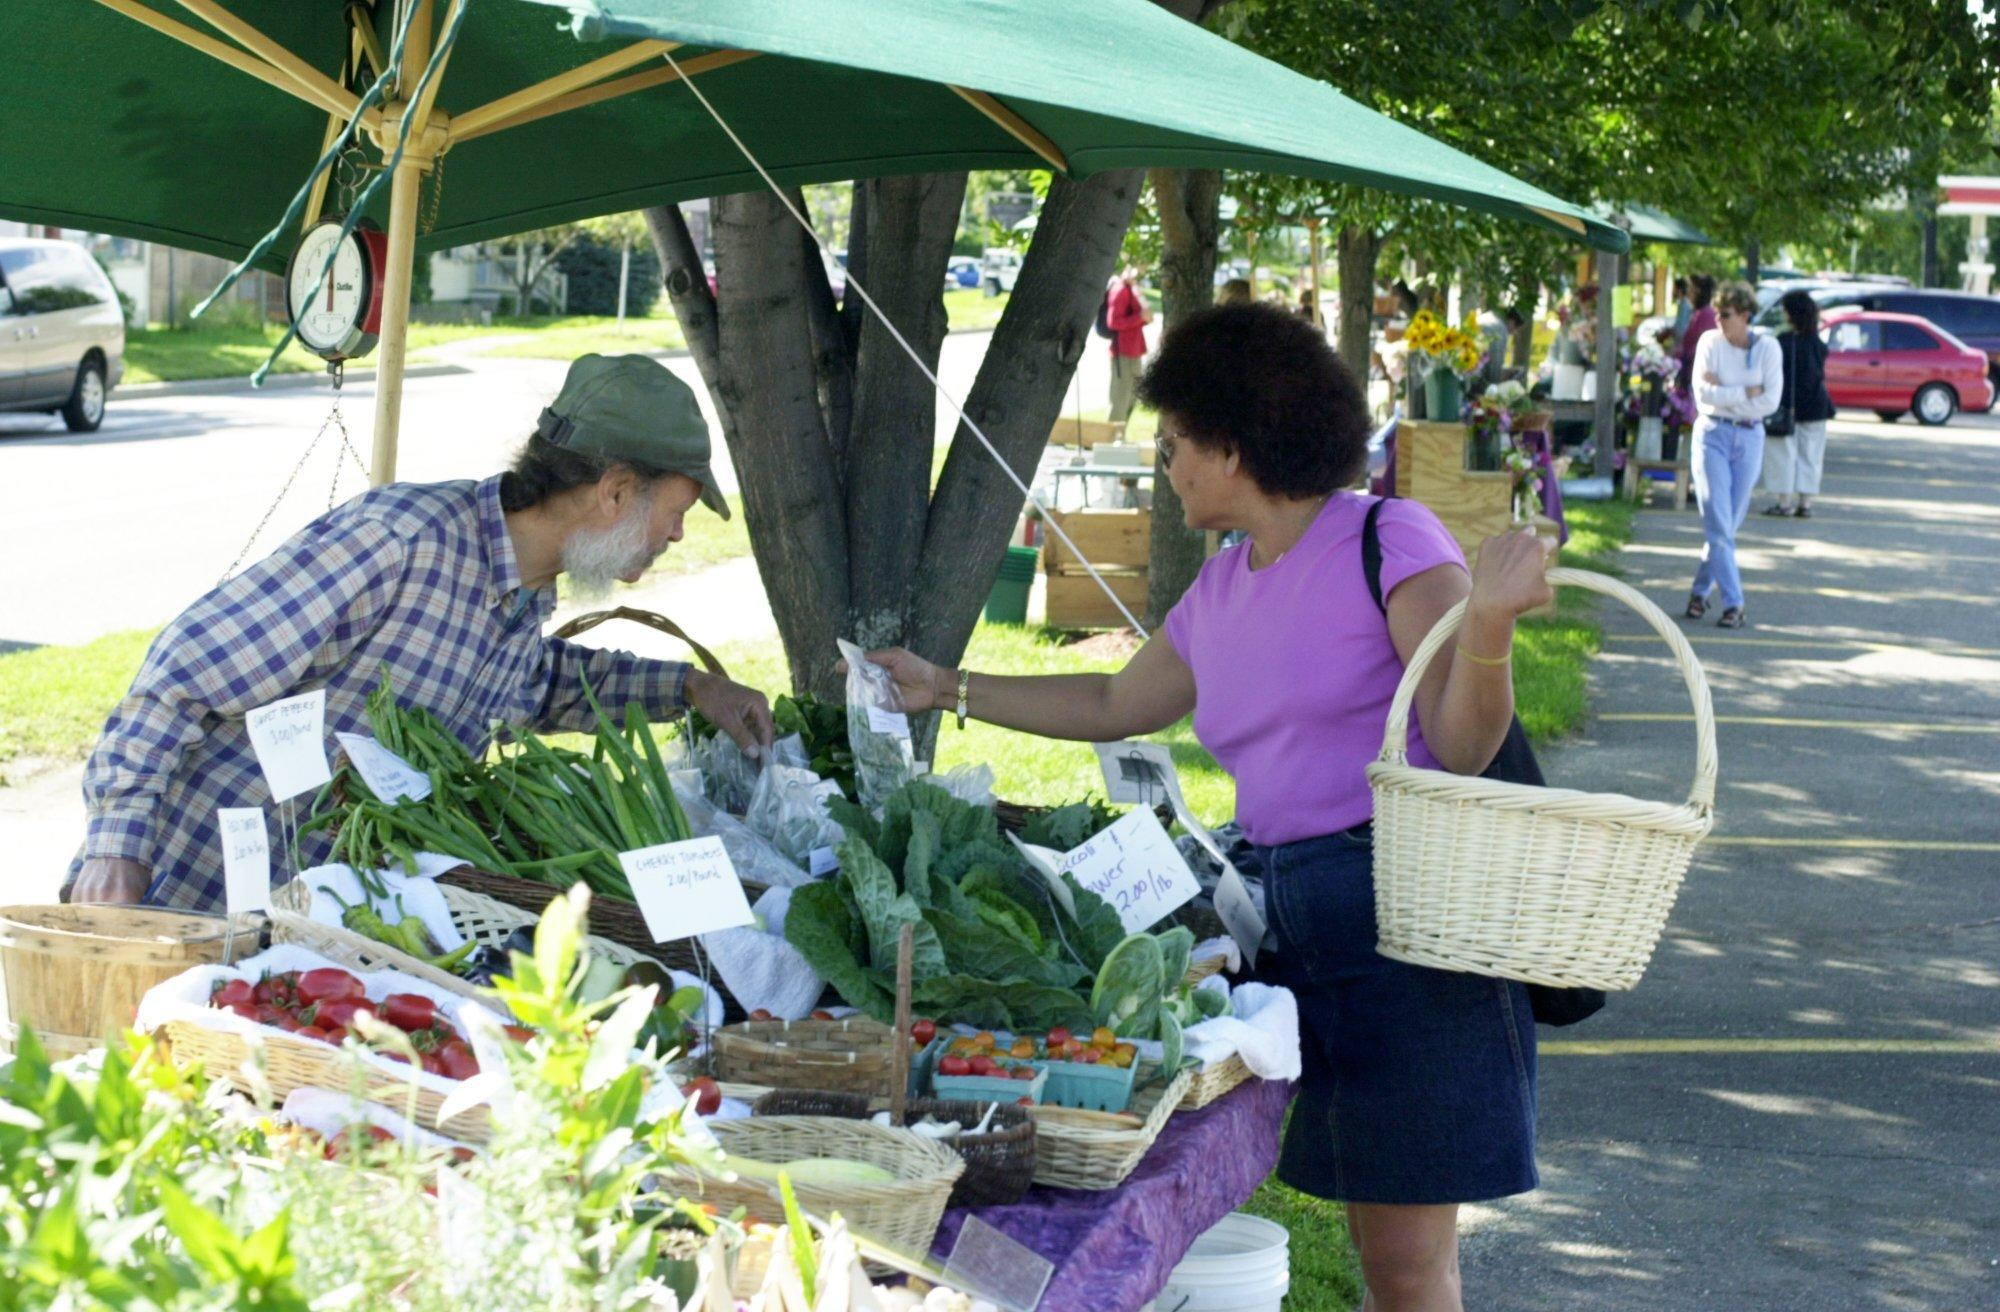 Too much of a good thing? Five Chittenden County farmers markets have disappeared in five years